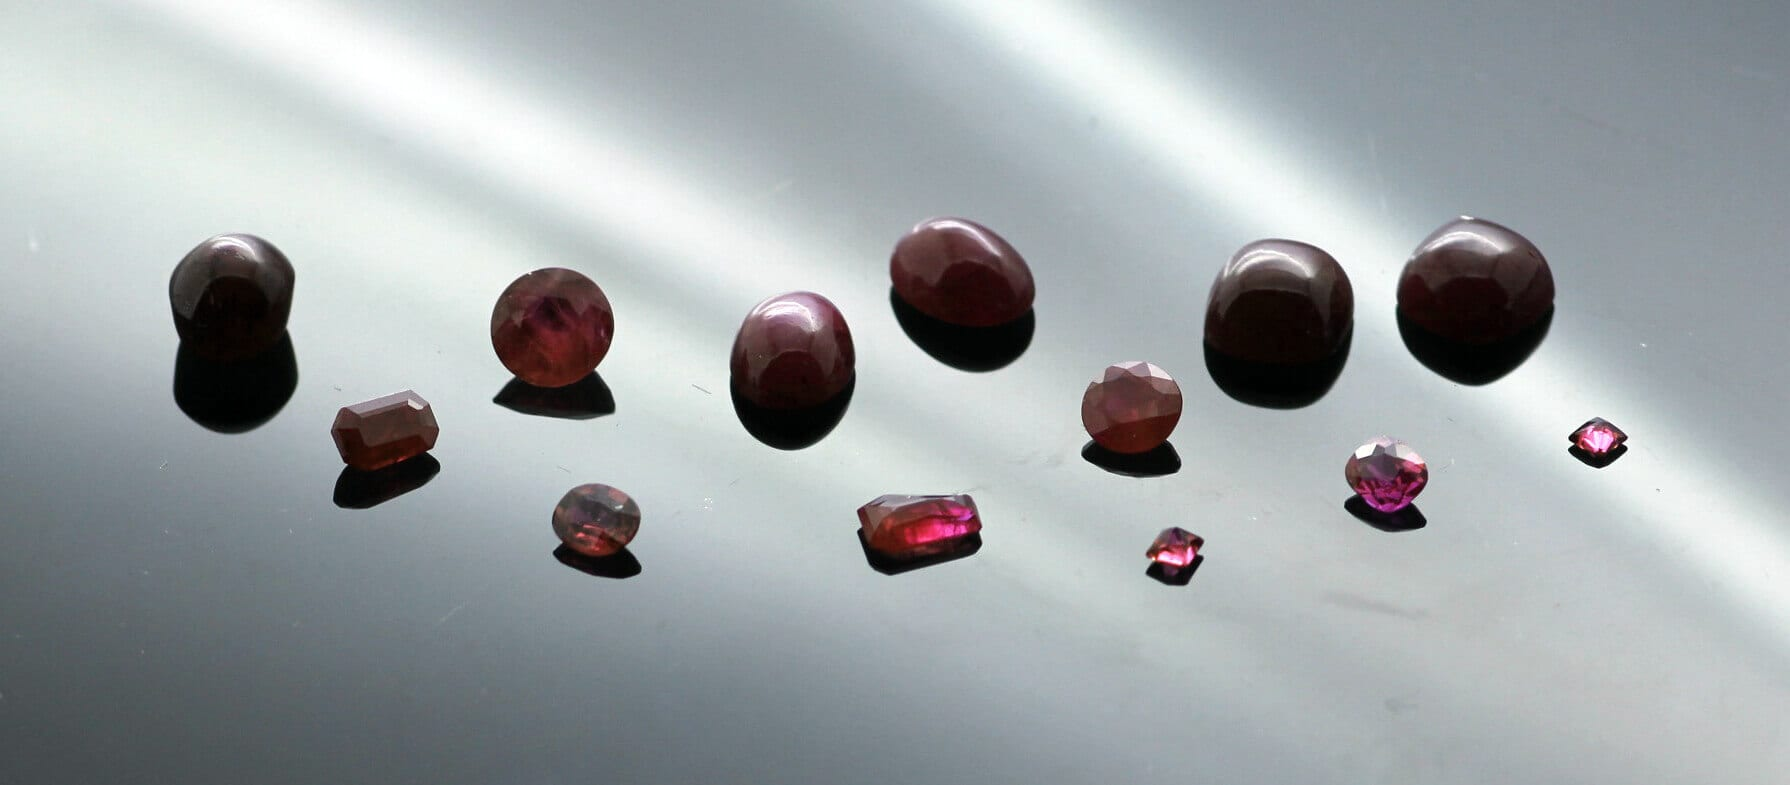 Ravishing Rubies The Birthstone For July Julian Stephens